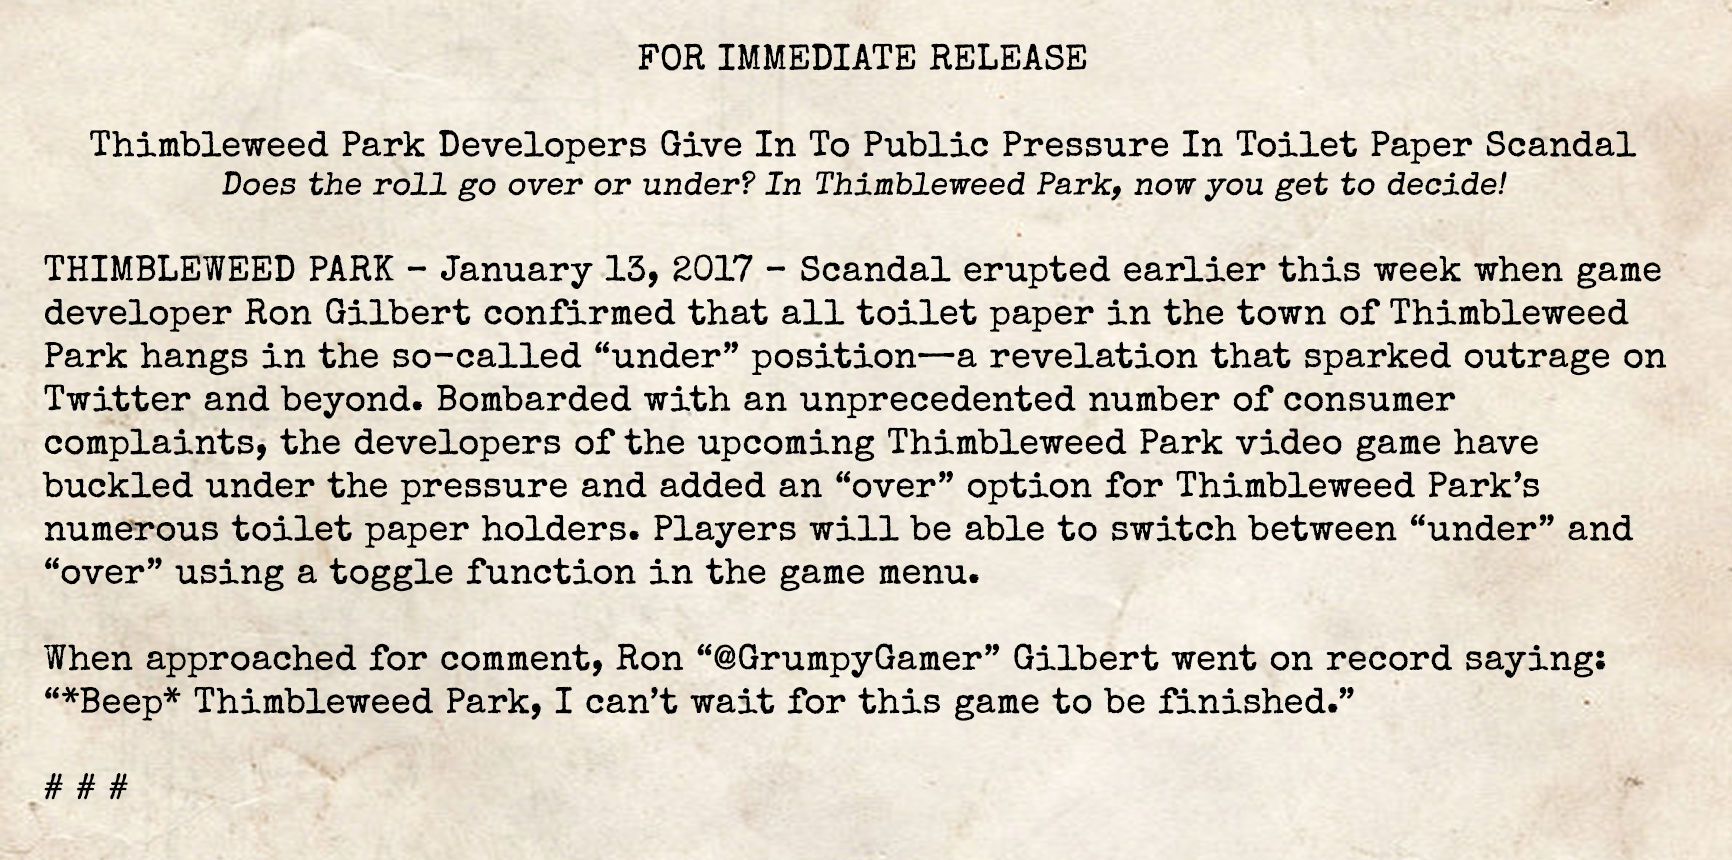 Thimbleweed Park Blog- For Immediate Release